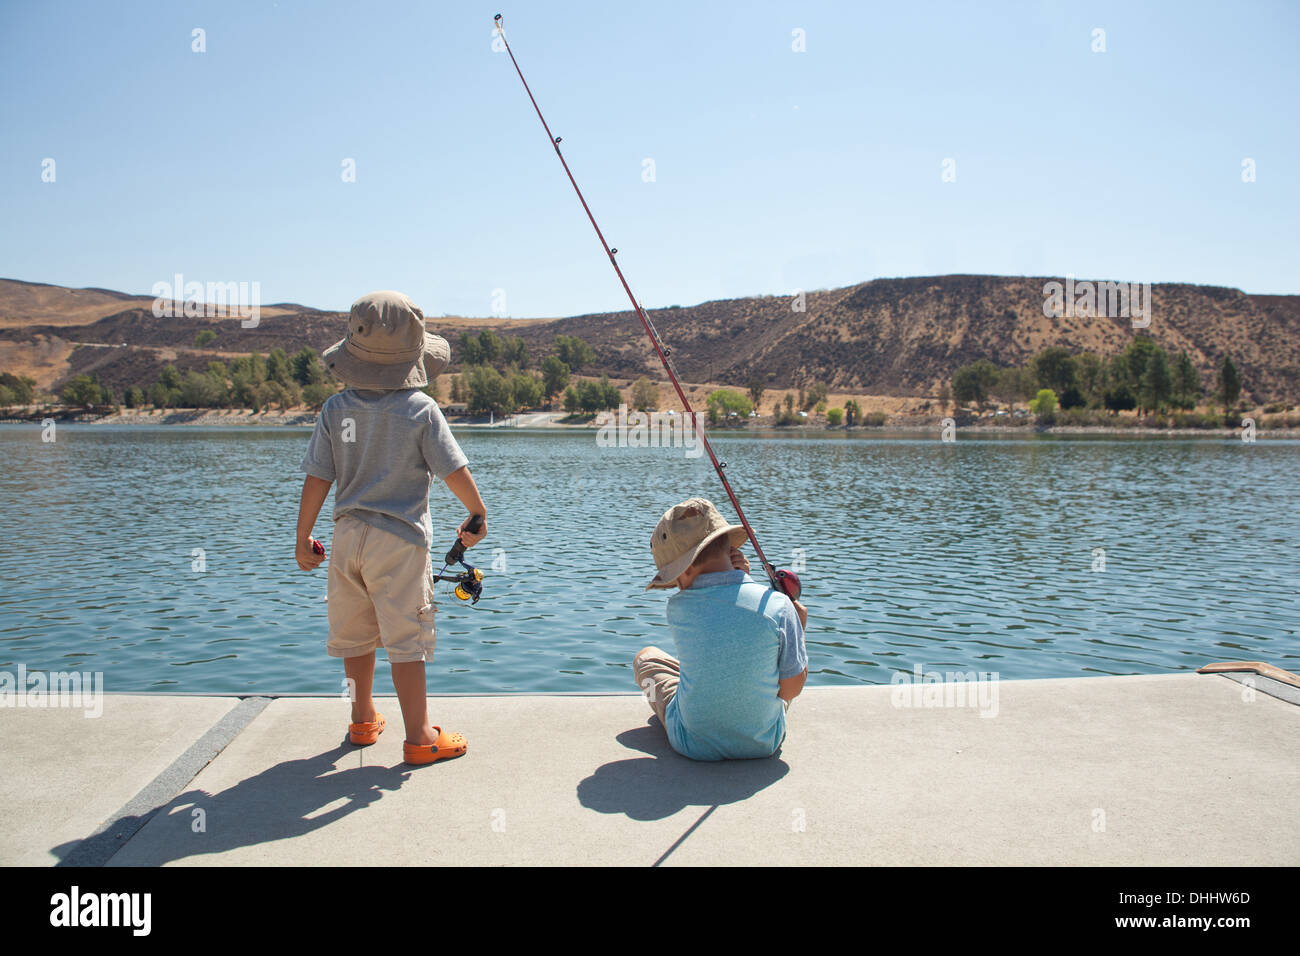 Boys fishing by lake - Stock Image